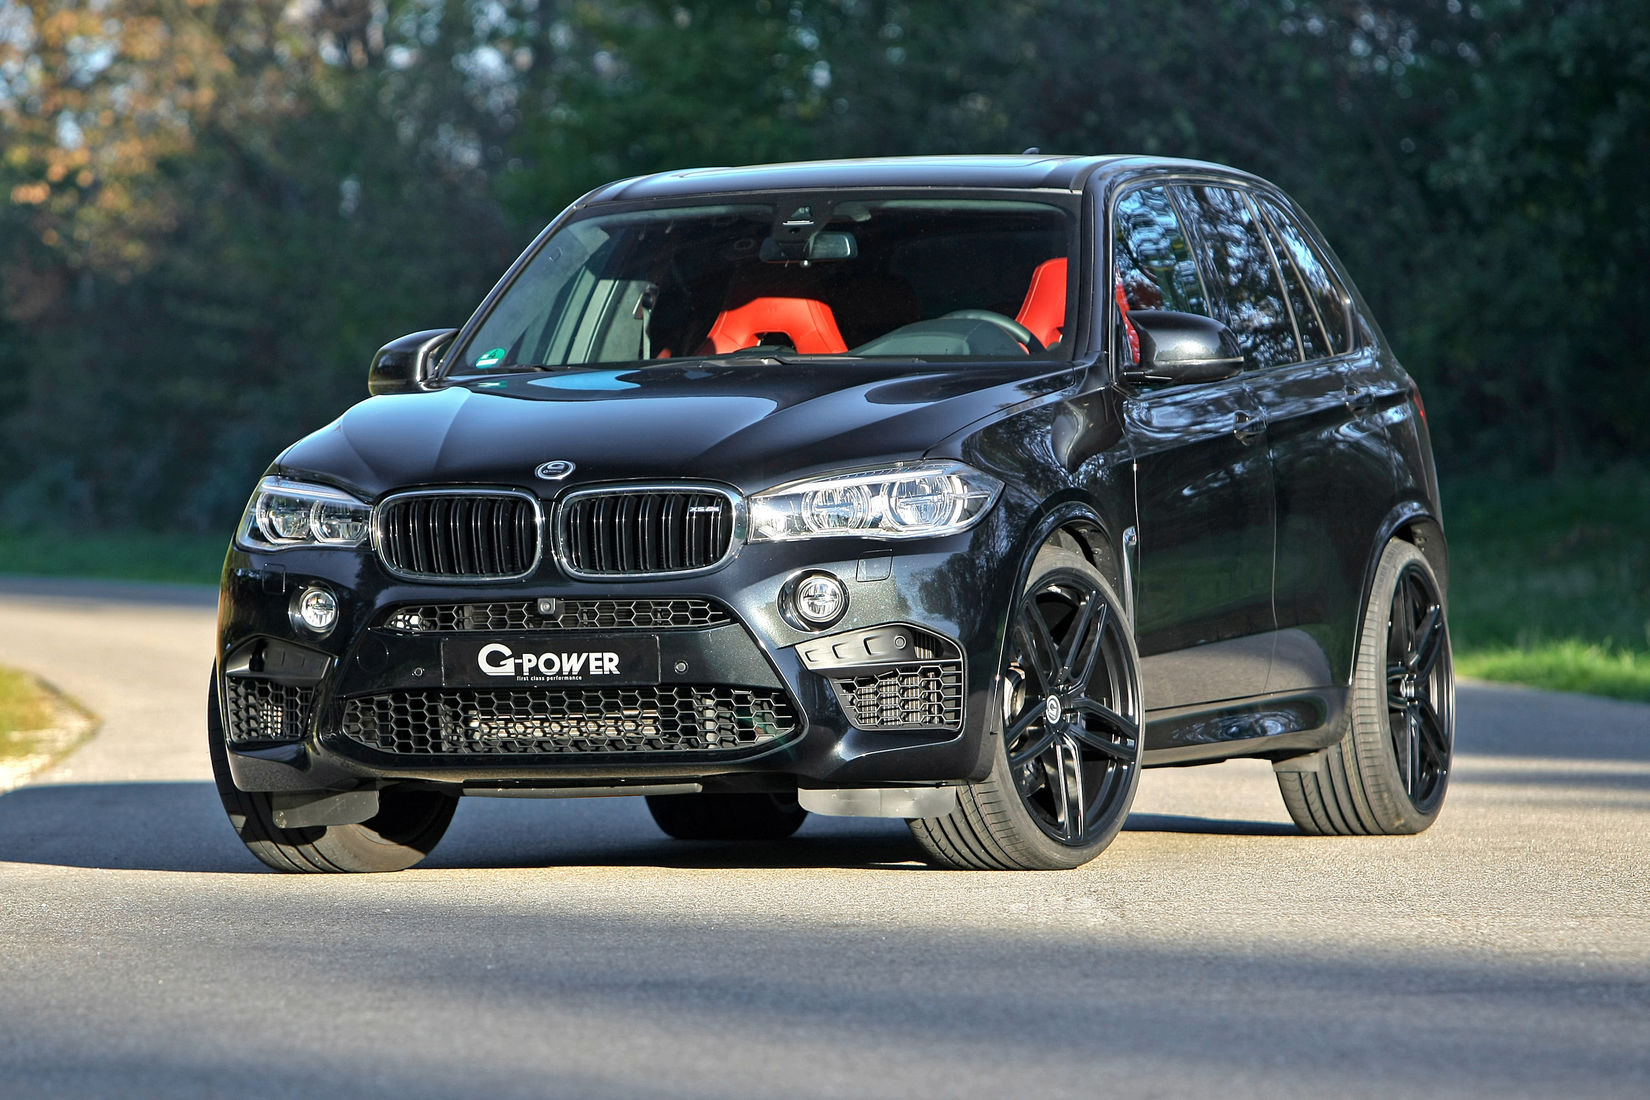 Bmw X5 M By G Power Gets 700 Horsepower